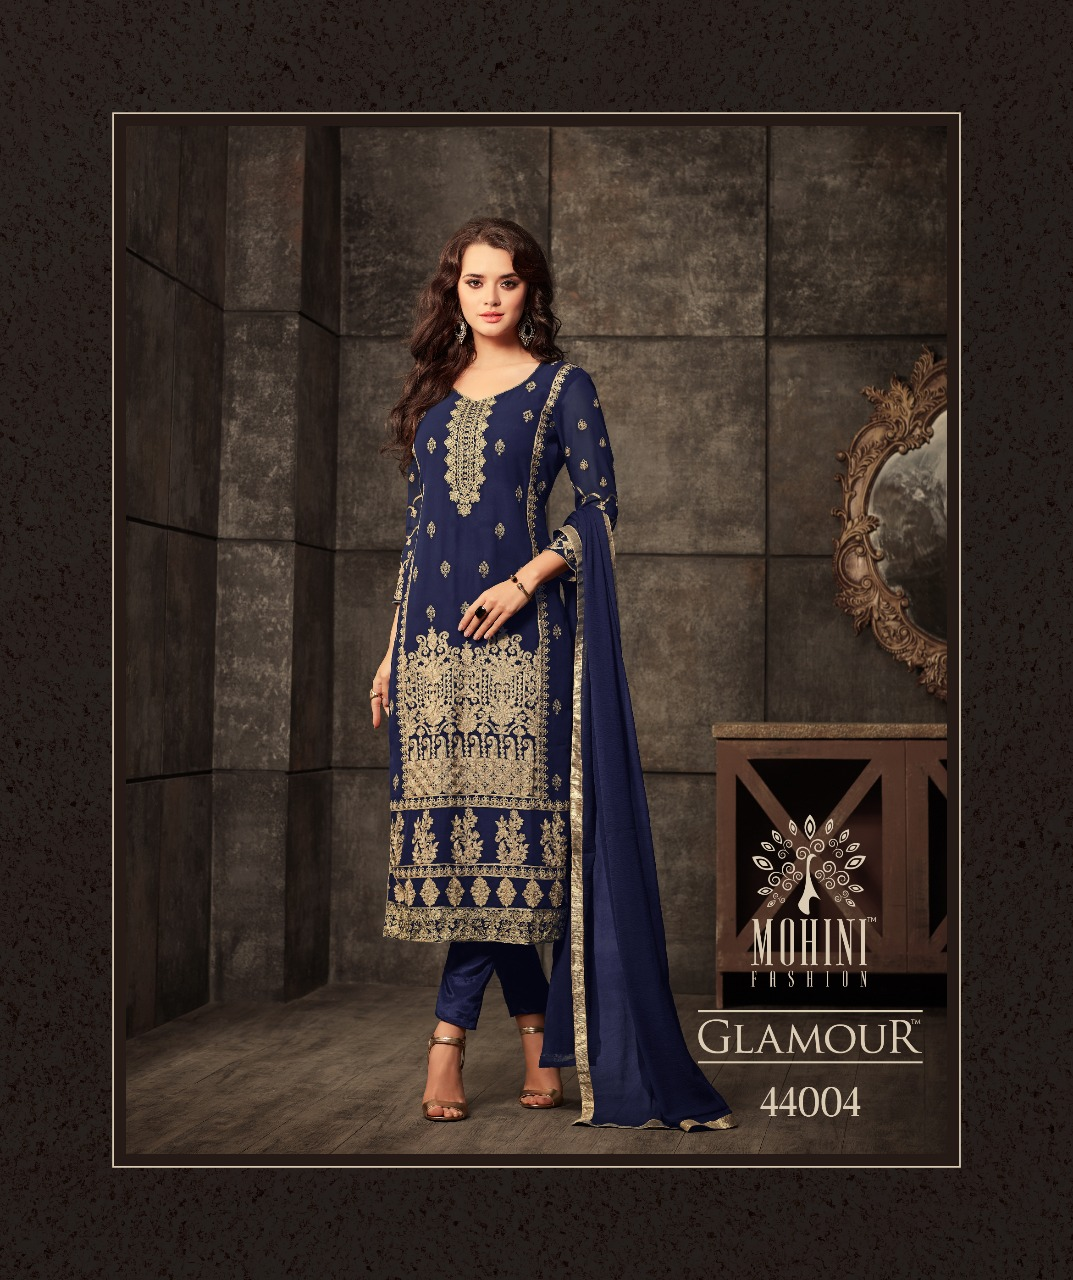 Mohini Fashion Glamour 44004A